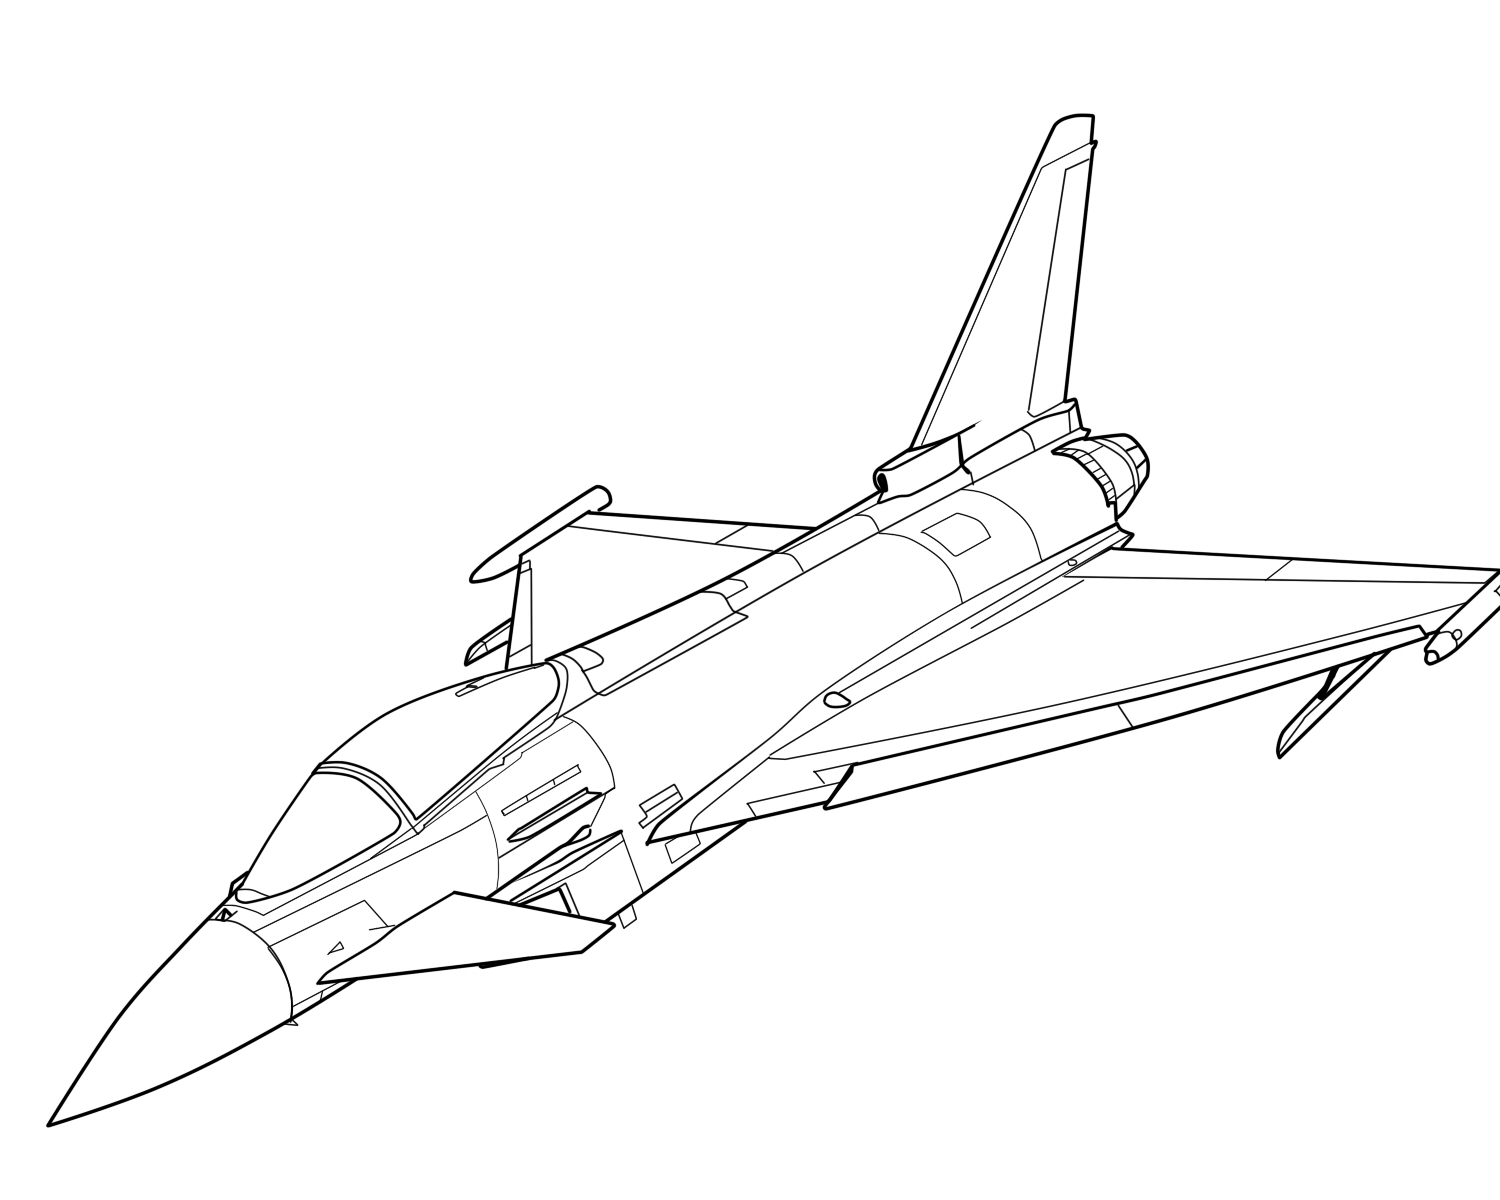 Line Drawing Jet : Aircraft line drawing at getdrawings free for